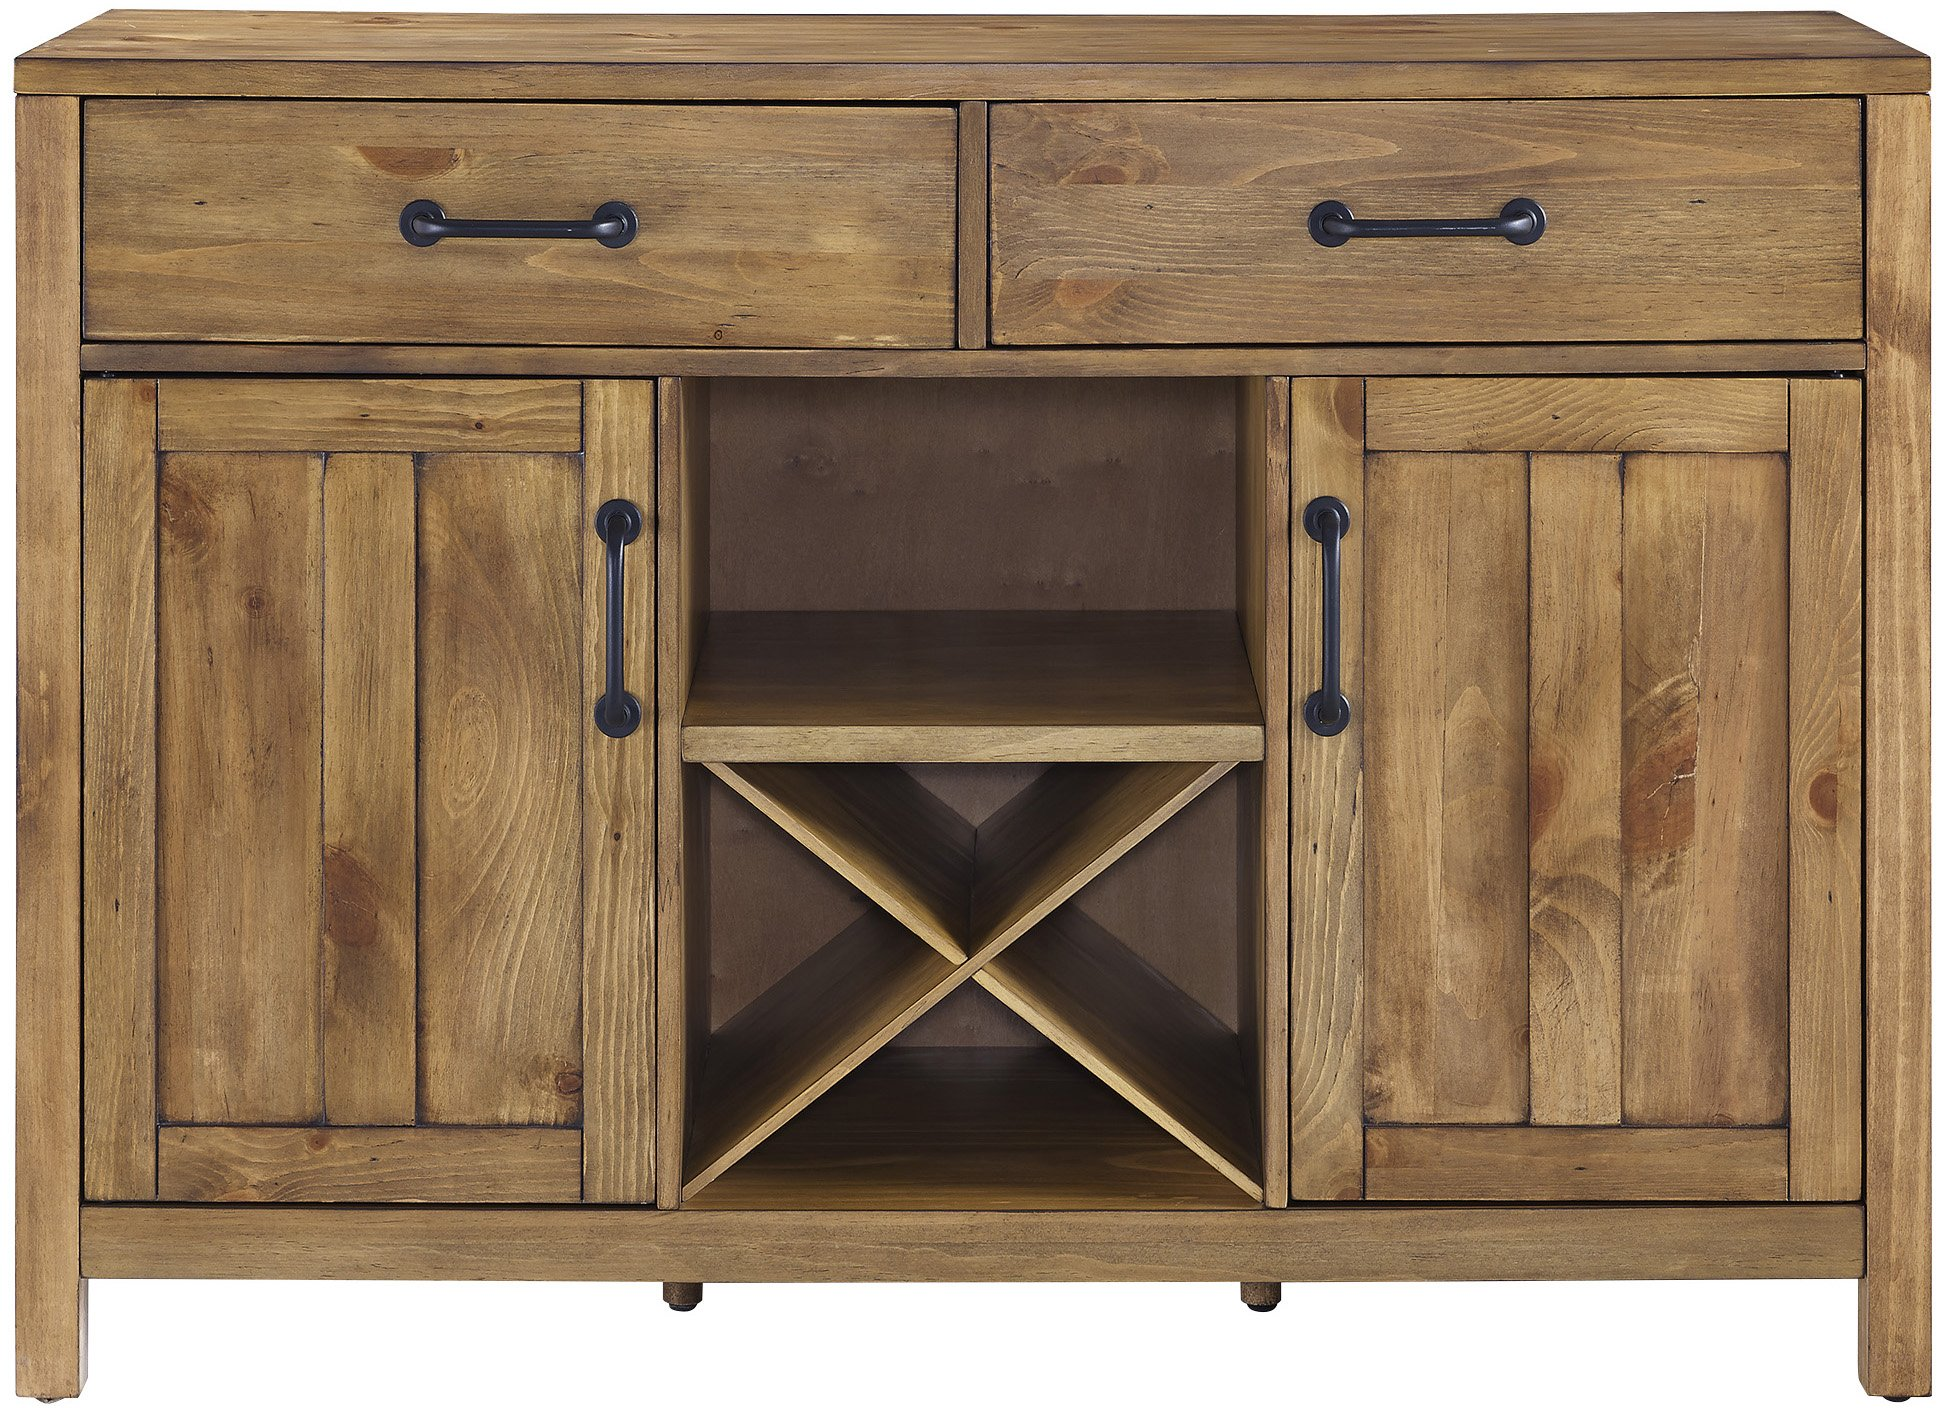 Crosley Furniture Roots Buffet Dining Room Storage - Natural by Crosley Furniture (Image #3)